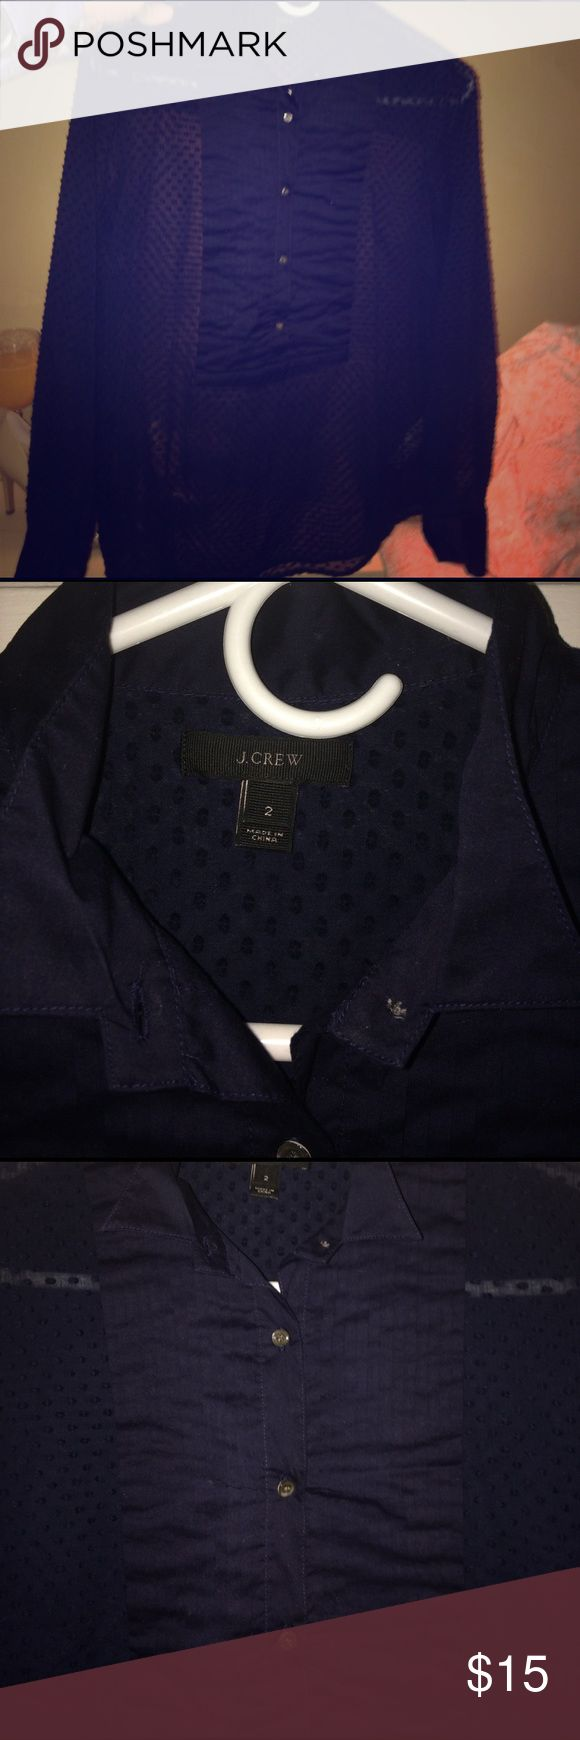 JCrew Swiss dot tuxedo shirt in navy JCrew Swiss dot tuxedo shirt in navy,  100% cotton pullover top with five buttons and collar. Tuxedo like front. Thin material. Beautiful top dressy or casual. J. Crew Tops Blouses